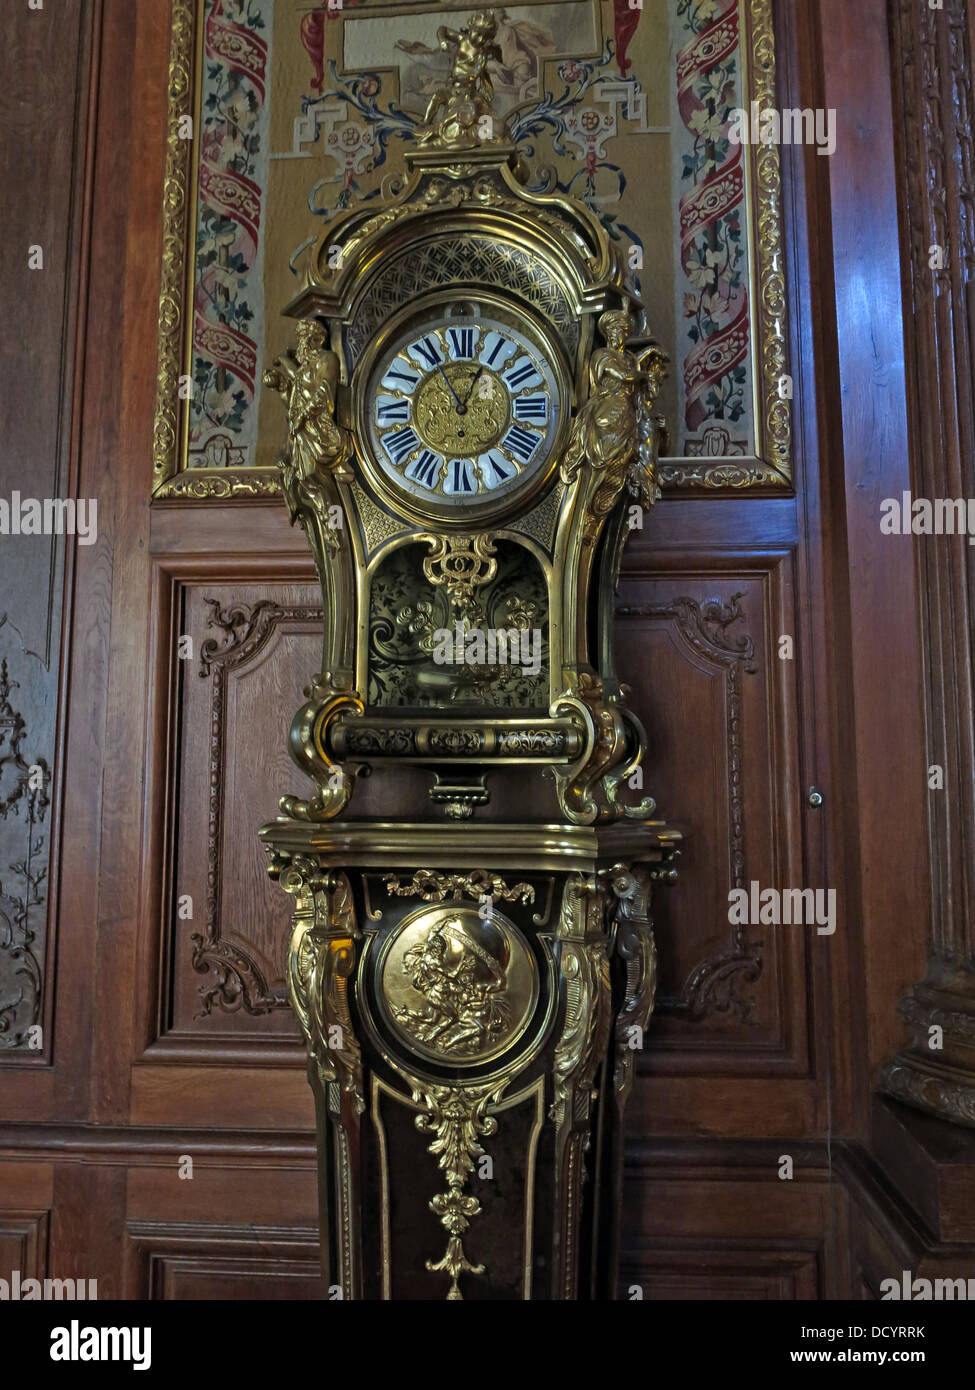 English,British,stately,homes,houses,national,trust,tourist,tourism,travel,class,system,upper,twit,Rothschild,Rothschilds,french,style,France,19th,century,important,makers,in,18th-century,18th,clockmaker,to,the,king,Julien,Leroy,and,Jean-André,Lepaute,Jean-Andre,Jean,Andre,Boulle,Cressent,Pedestal,Gotonysmith Waddesdon Manor,Bicester Rd,Aylesbury,Buckinghamshire,England,UK HP18 0JH hp180jh 1720,Buy Pictures of,Buy Images Of